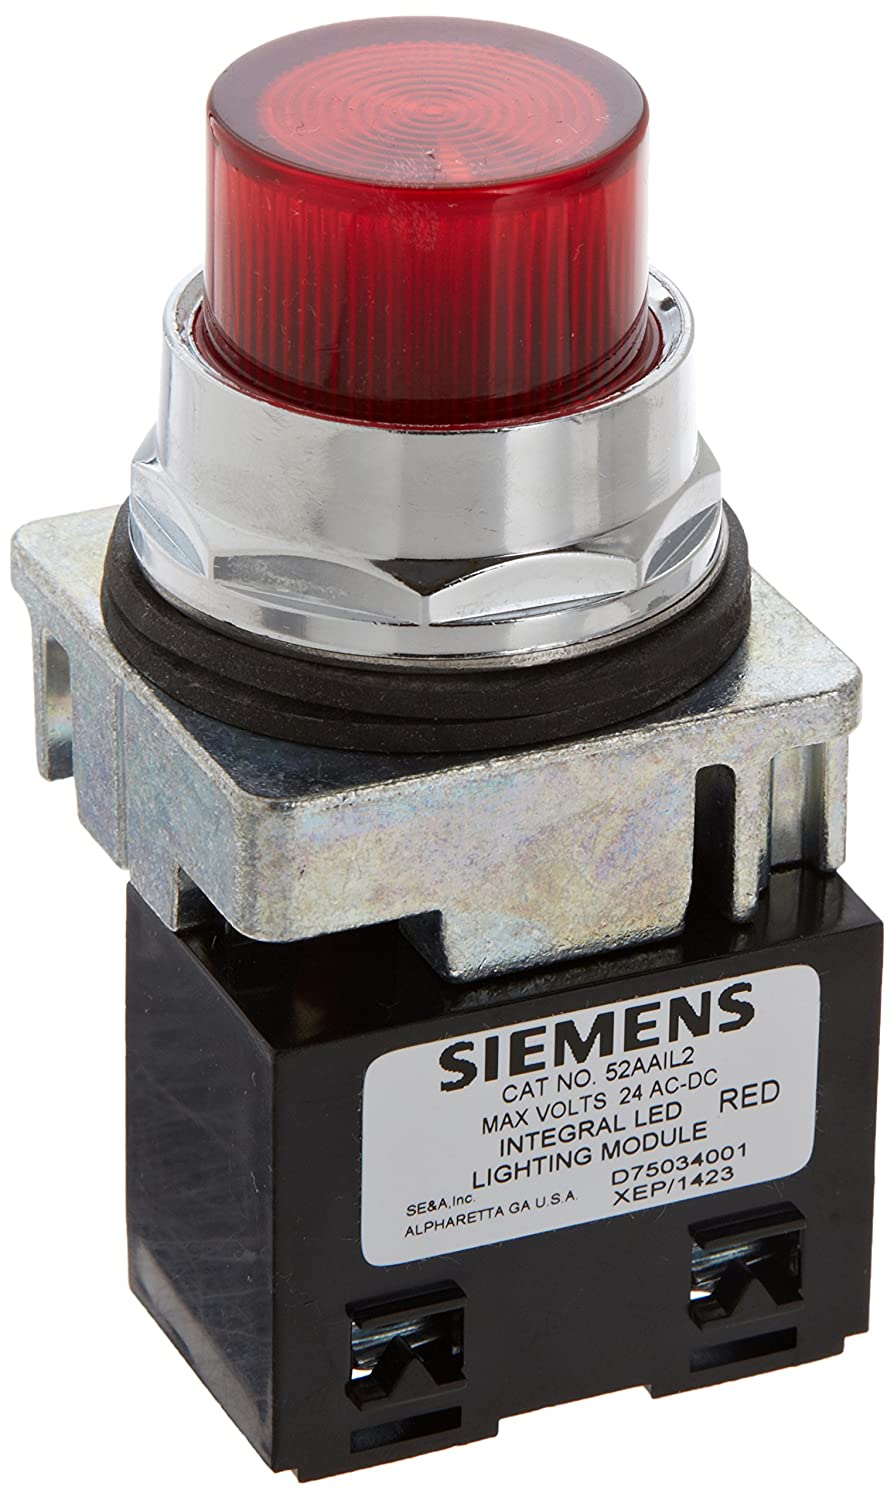 Siemens 52PL4L2 Heavy Duty Pilot Light Plastic Lens 24VAC//VDC Voltage Integrated LED Module Red Water and Oil Tight